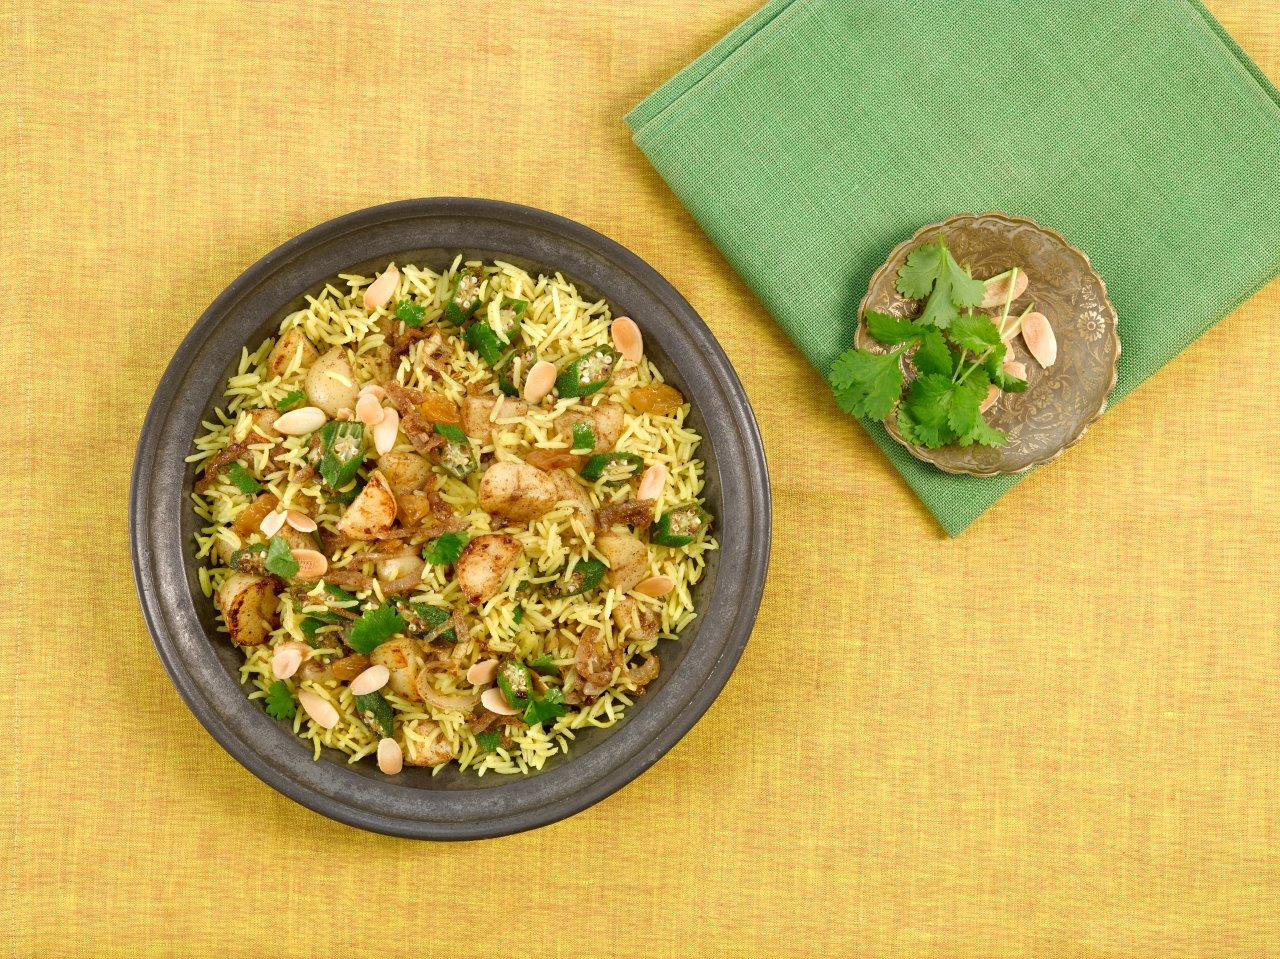 Baked Vegetable Biryani